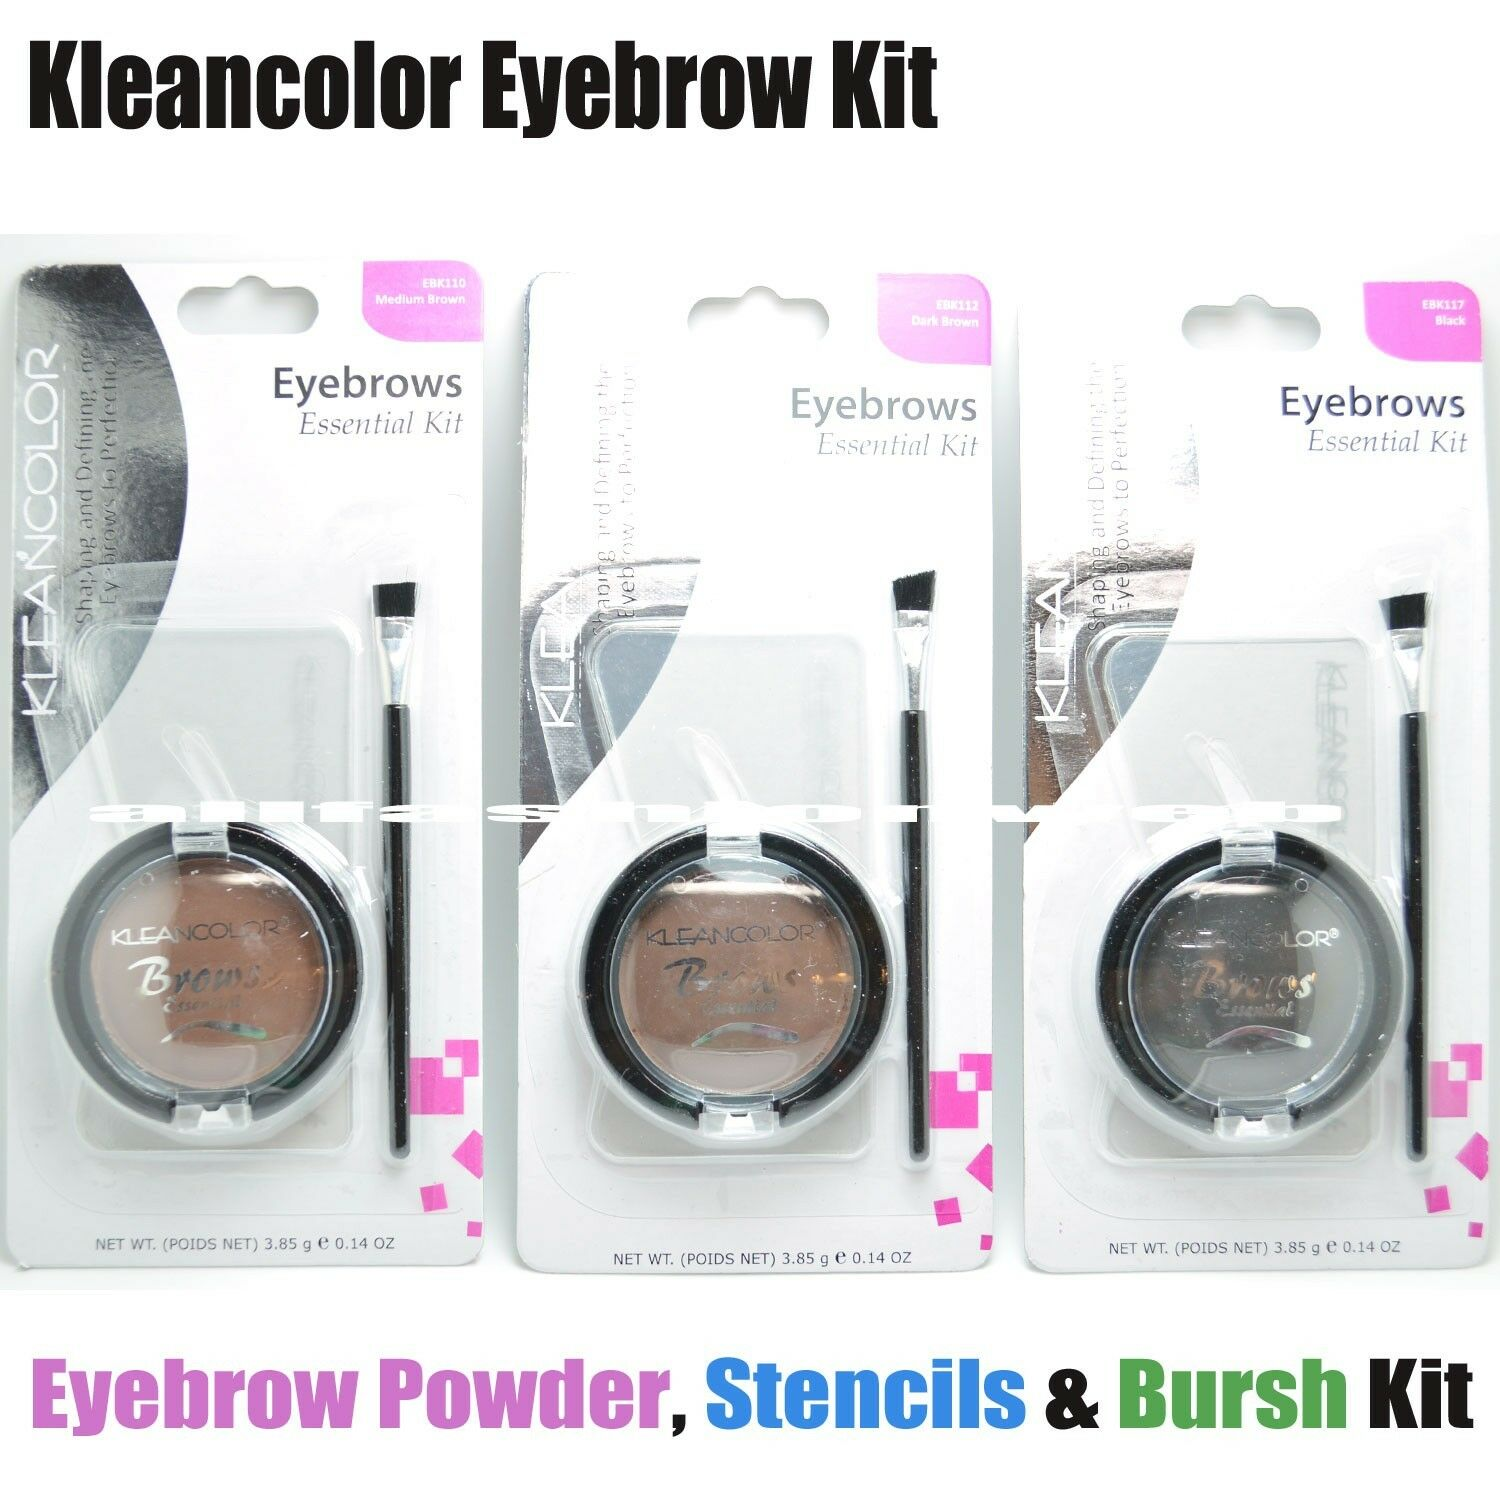 1 Kleancolor Eyebrow Kit 3 Eyebrows Stencils Powder Brow Pomade Brush Of 2free Shipping See More